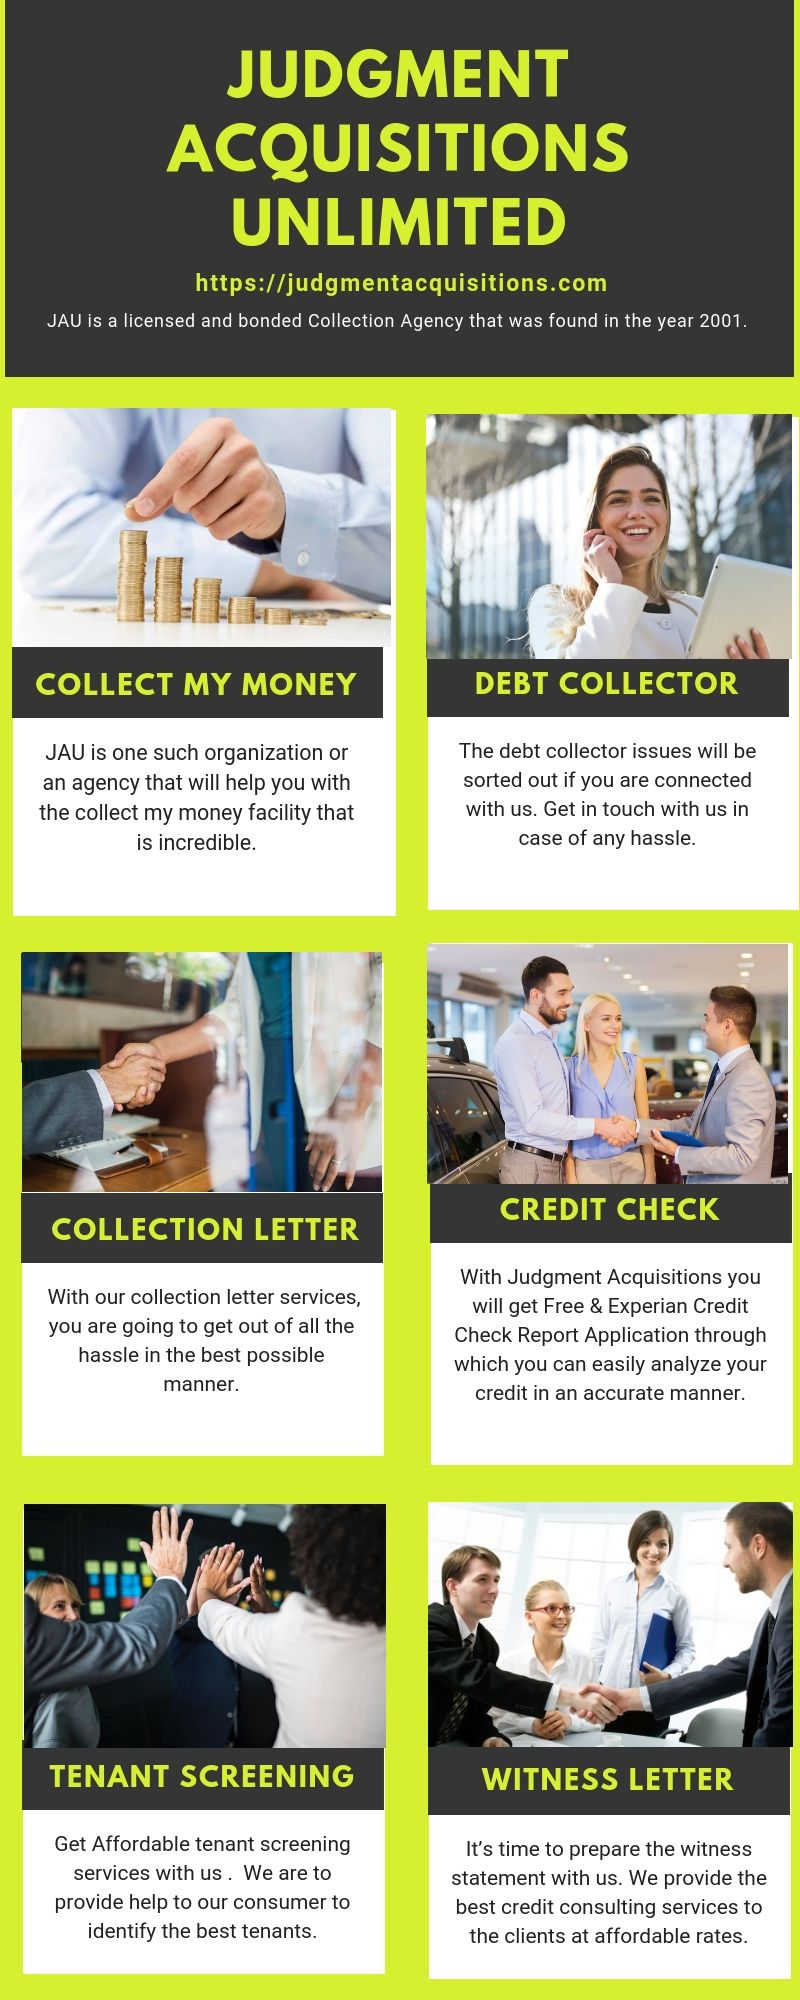 Looking for the best collection agency? JAU is one of the